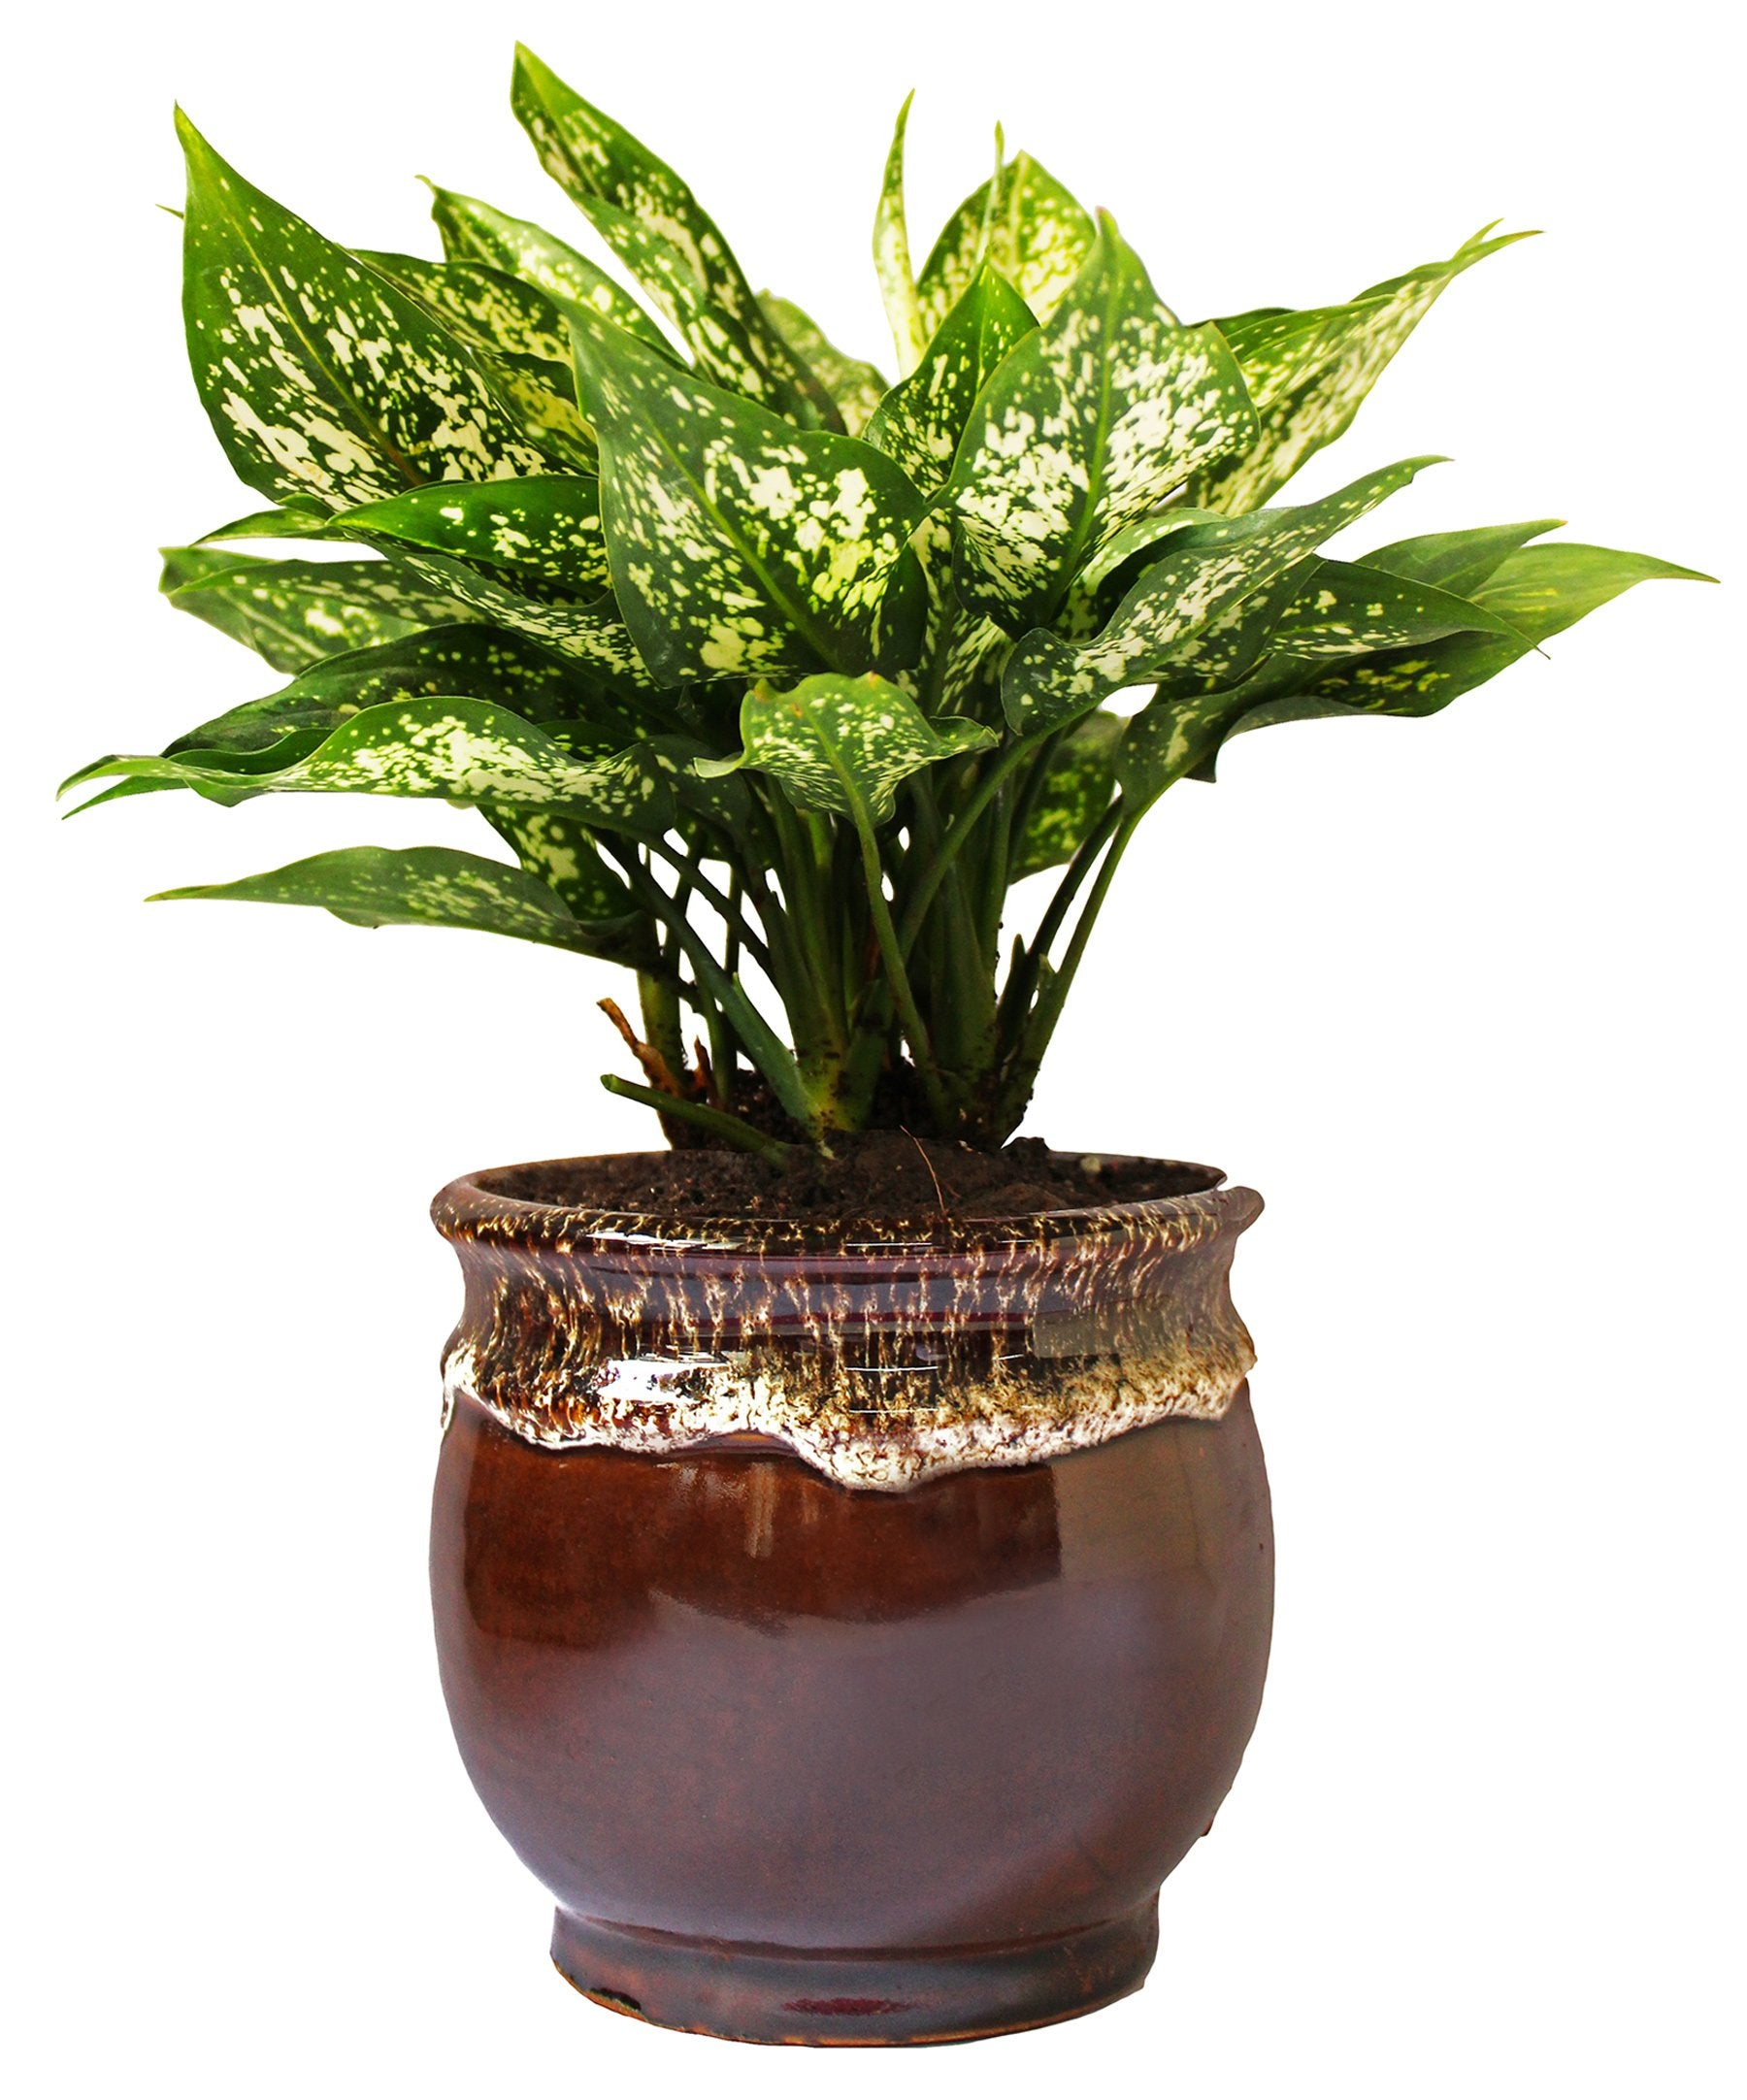 Rolling Nature  Good Luck Air Purifying Green Aglaonema Snow White Chinese Evergreen Plant in Brown Drip Glazed Pitcher Ceramic Pot